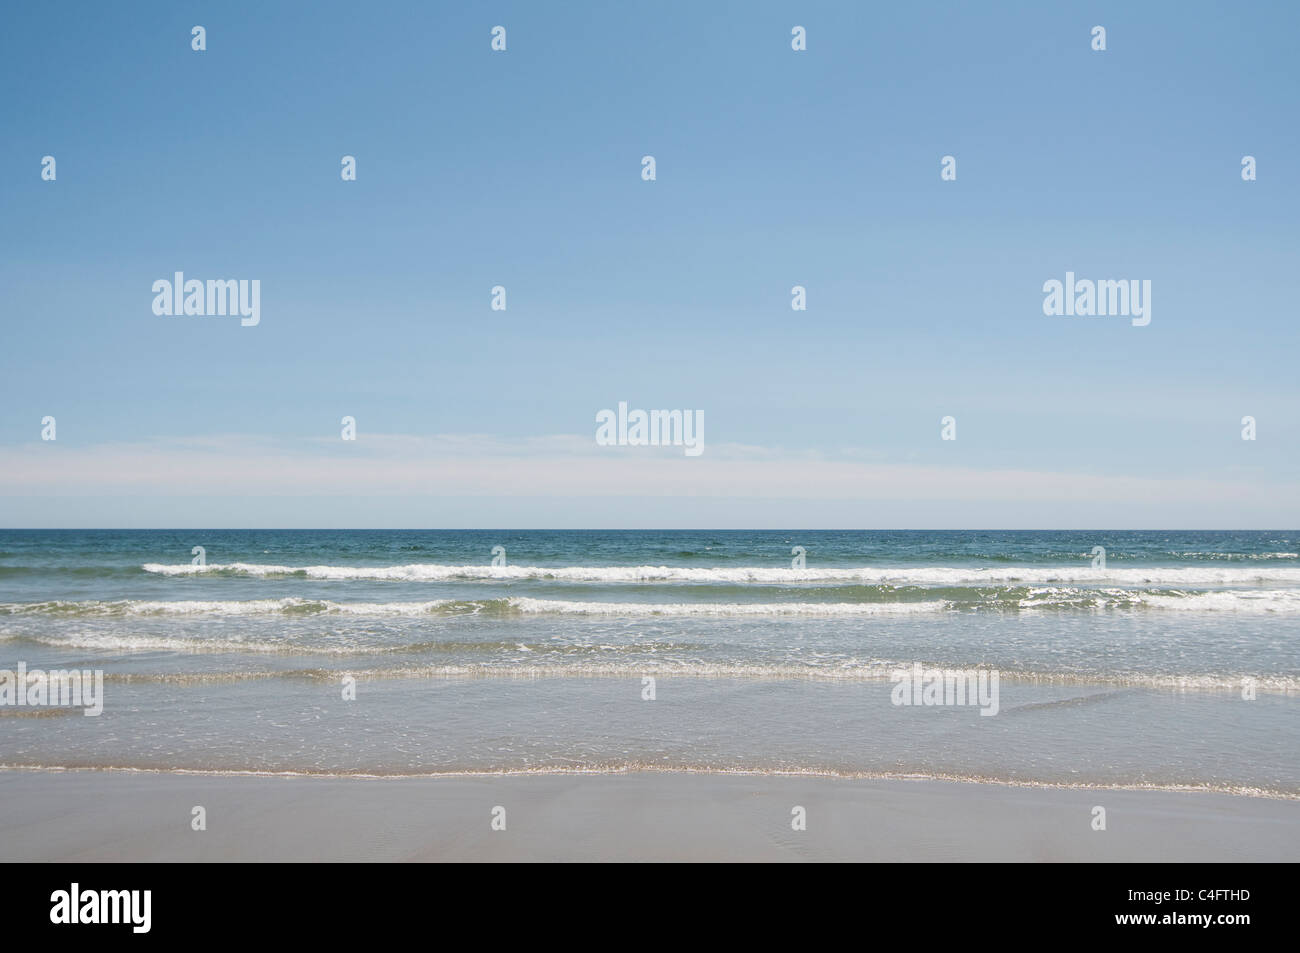 Waves wash ashore the sandy beach in Ogunquit, Maine, USA. - Stock Image